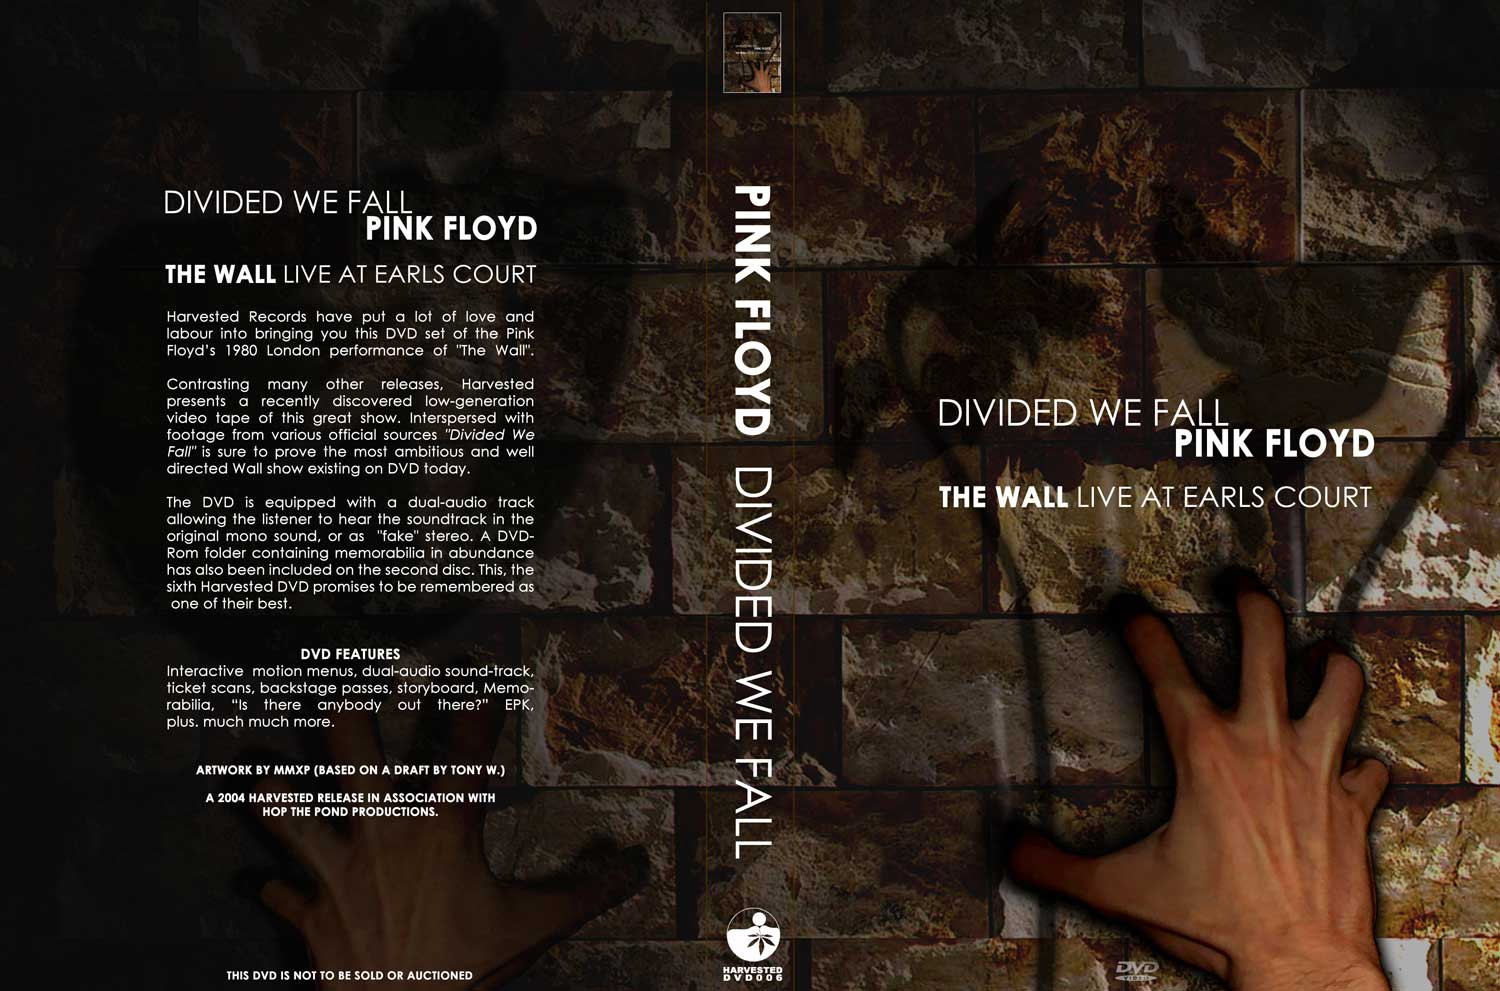 DVD: Divided We Fall - The Wall Live at Earls Court